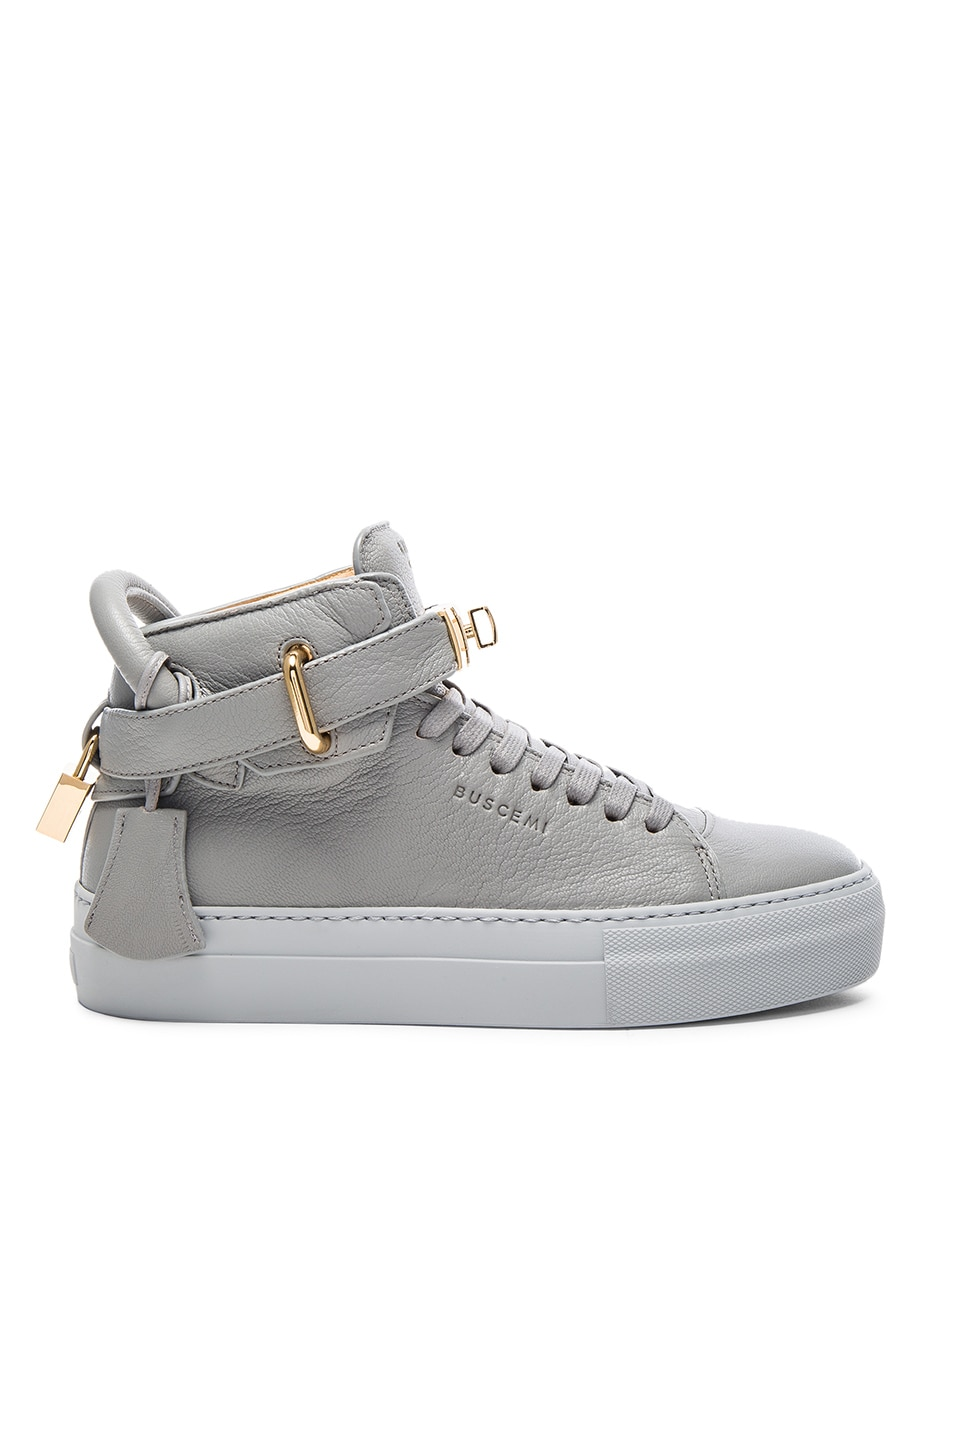 Image 1 of Buscemi 100MM Leather Sneakers in Light Grey